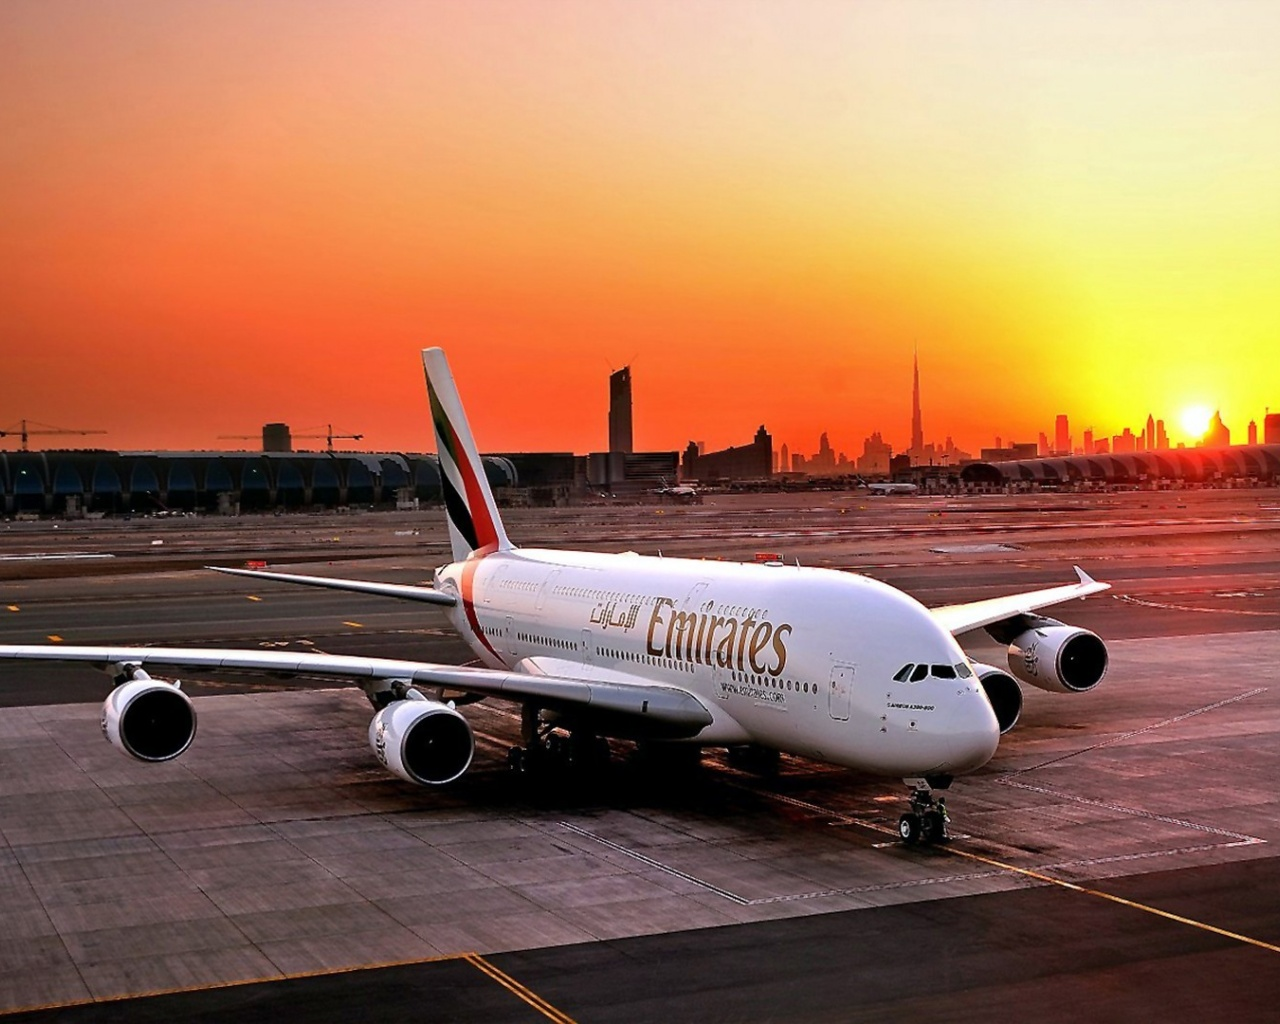 1280x1024 Fly Emirates Airbus A380 800 desktop PC and Mac 1280x1024